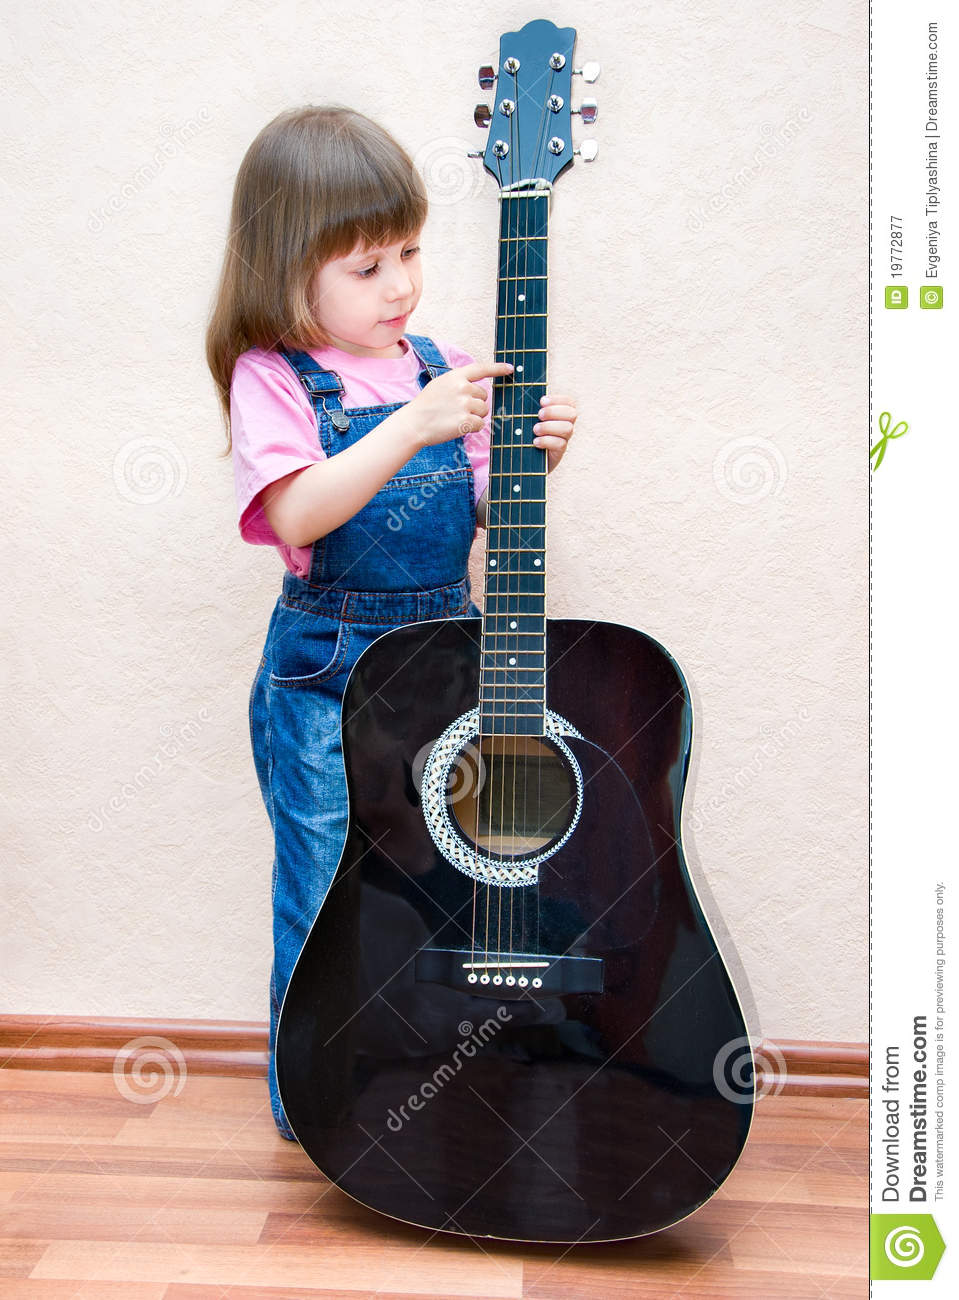 Tune Up Prices >> Baby Play On Guitar Royalty Free Stock Photography - Image: 19772877